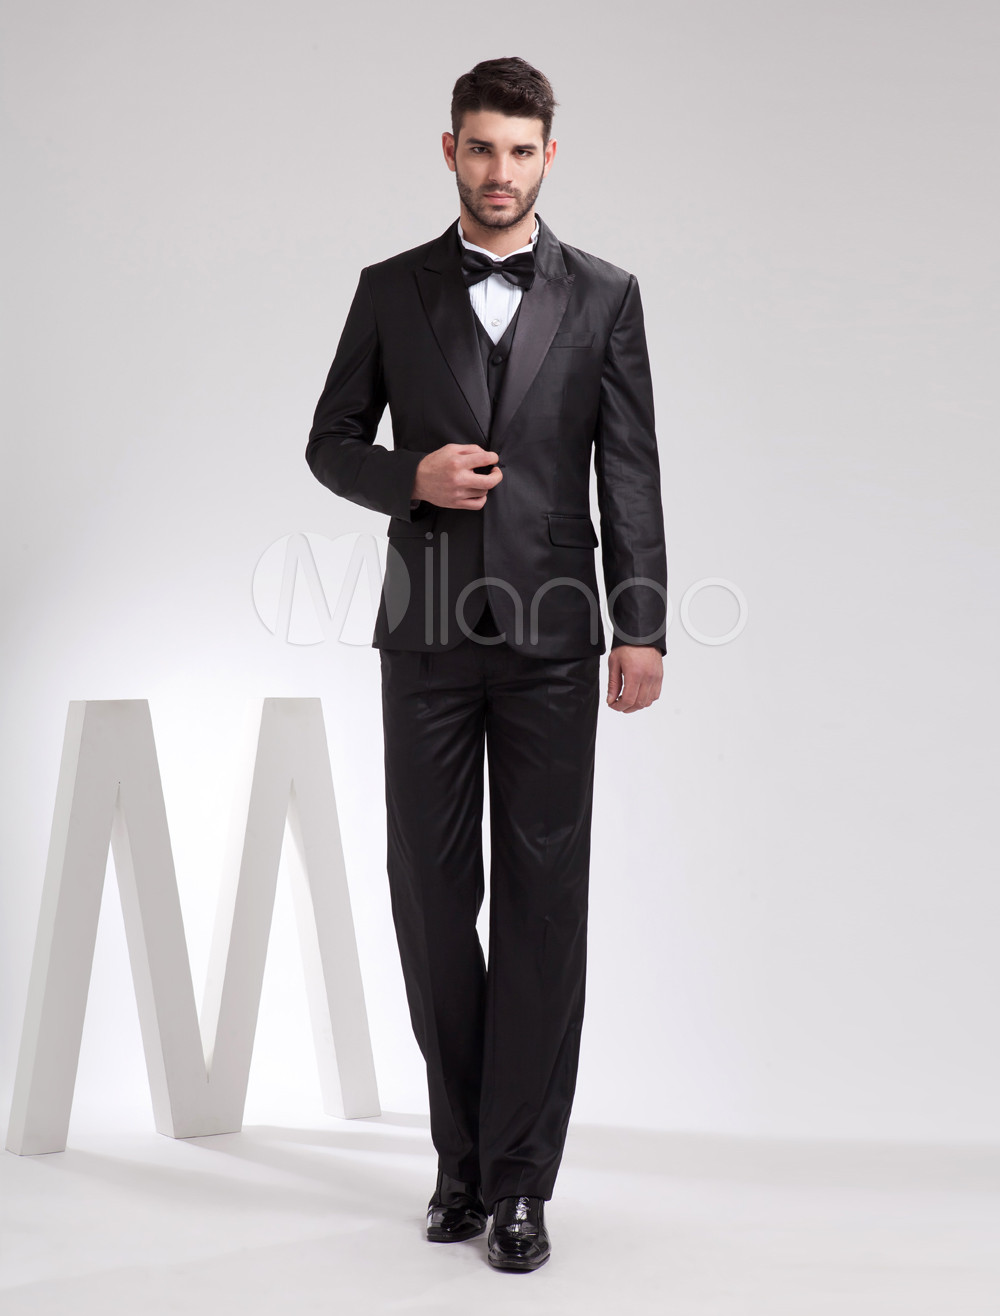 Wedding Groom Tuxedo handsome black serge front button groom tuxedo milanoo com